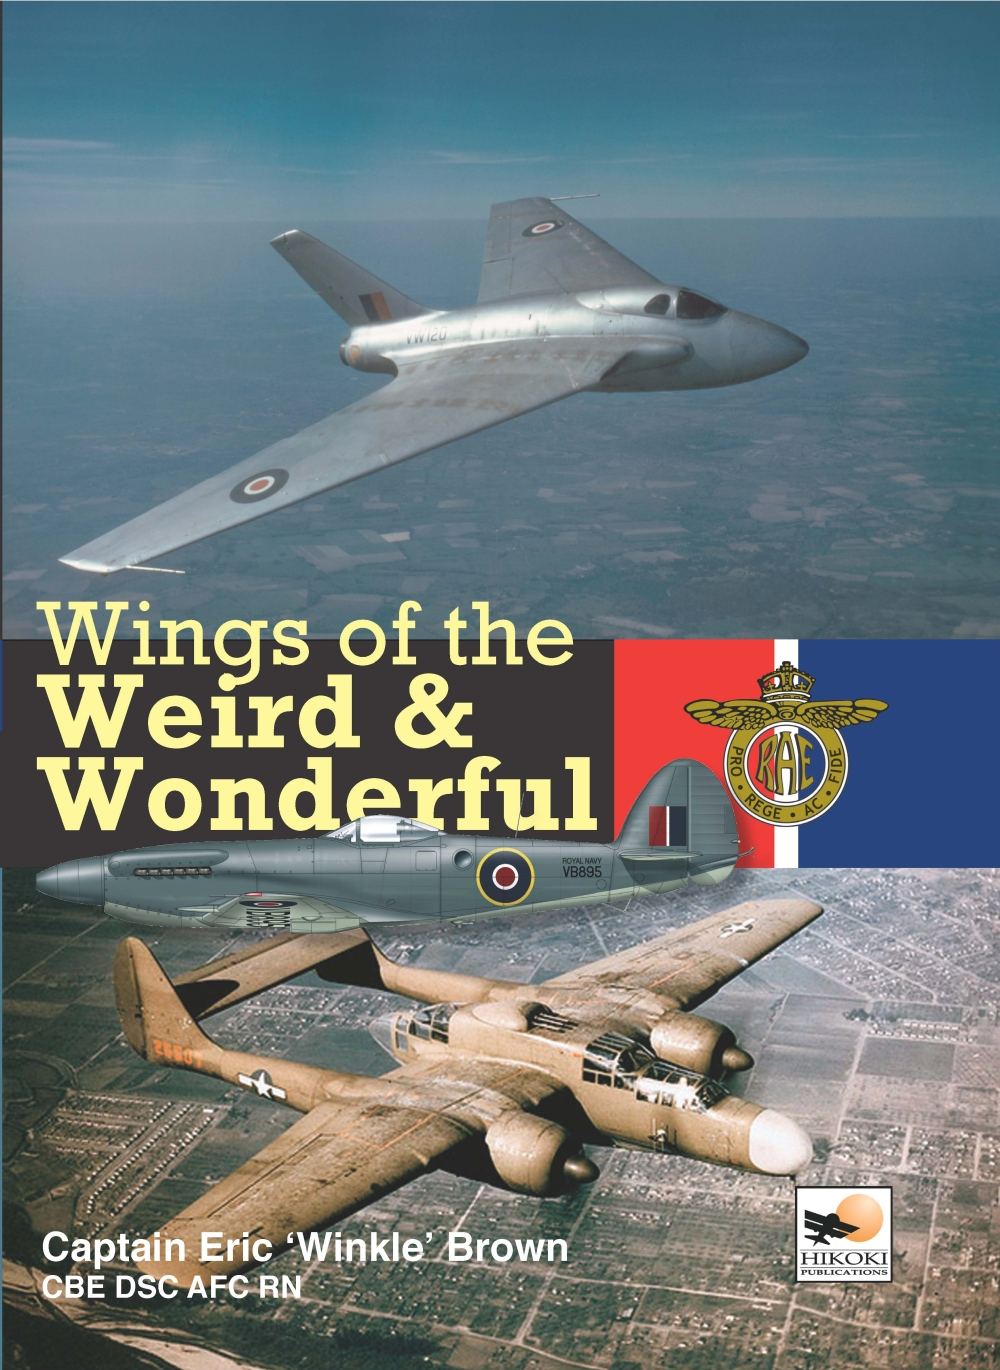 Wings of the Weird and Wonderful